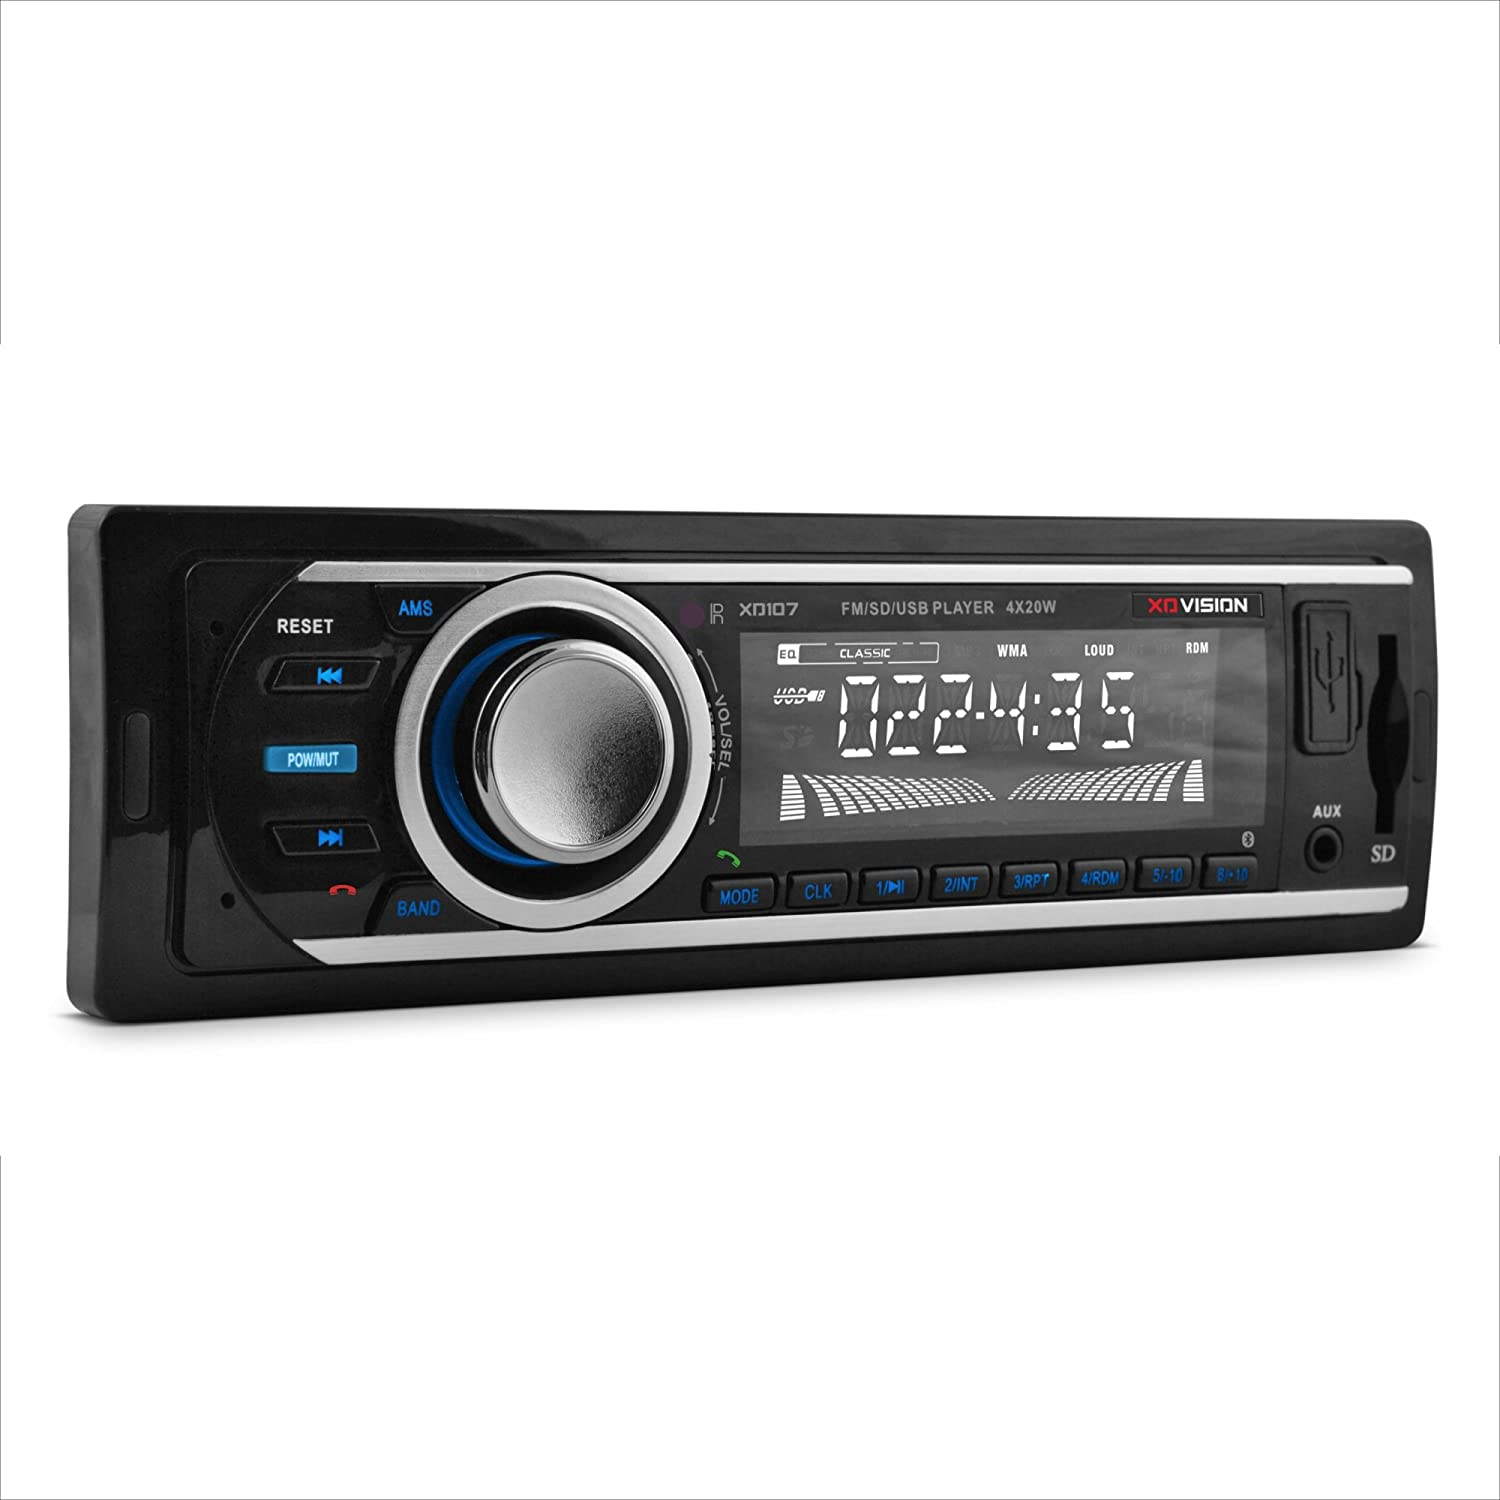 USB Port SD Card Slot Car Stereo ,BLACK XO Vision Wireless Bluetooth Car Stereo Receiver with 20 watts x 4 XD107 and MP3 and FM